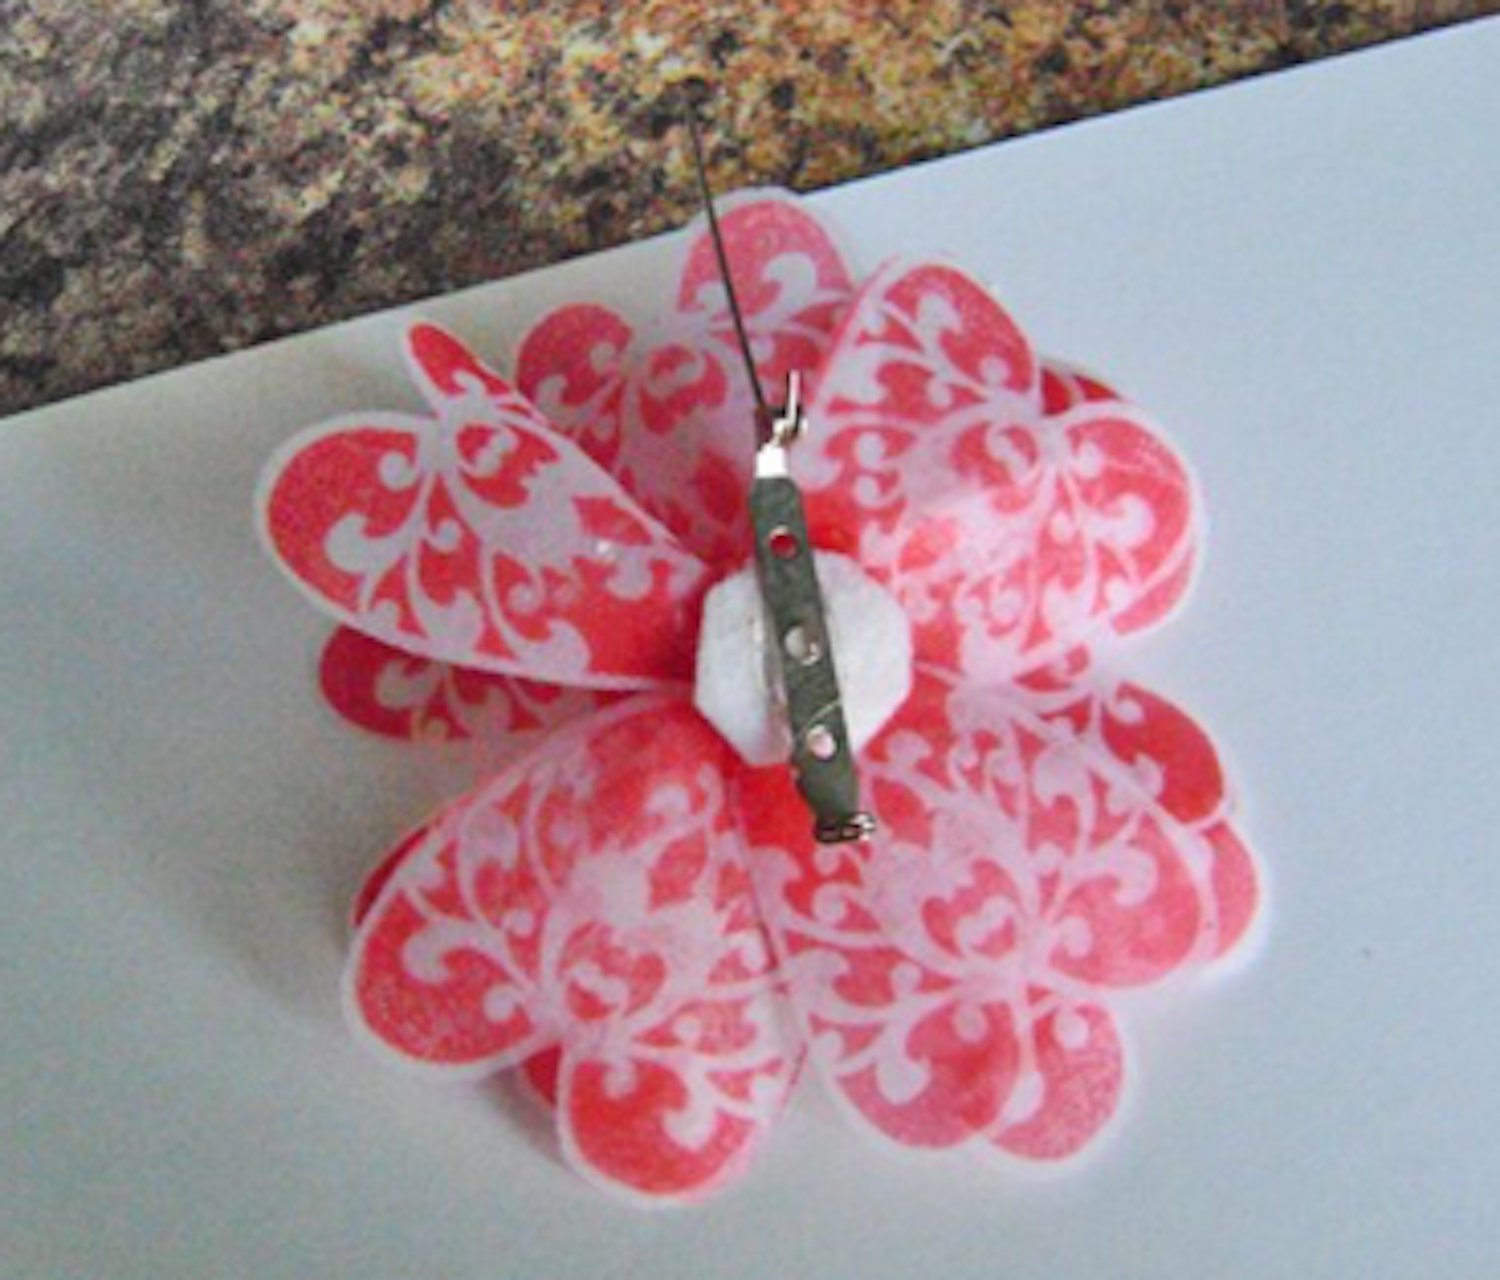 step 10 - Turn the flower bottom side up and glue a small circle of felt or fleece over the knot with Fabri-Tac. Use Dazzle-Tac or other jewelry glue to attach a pin.